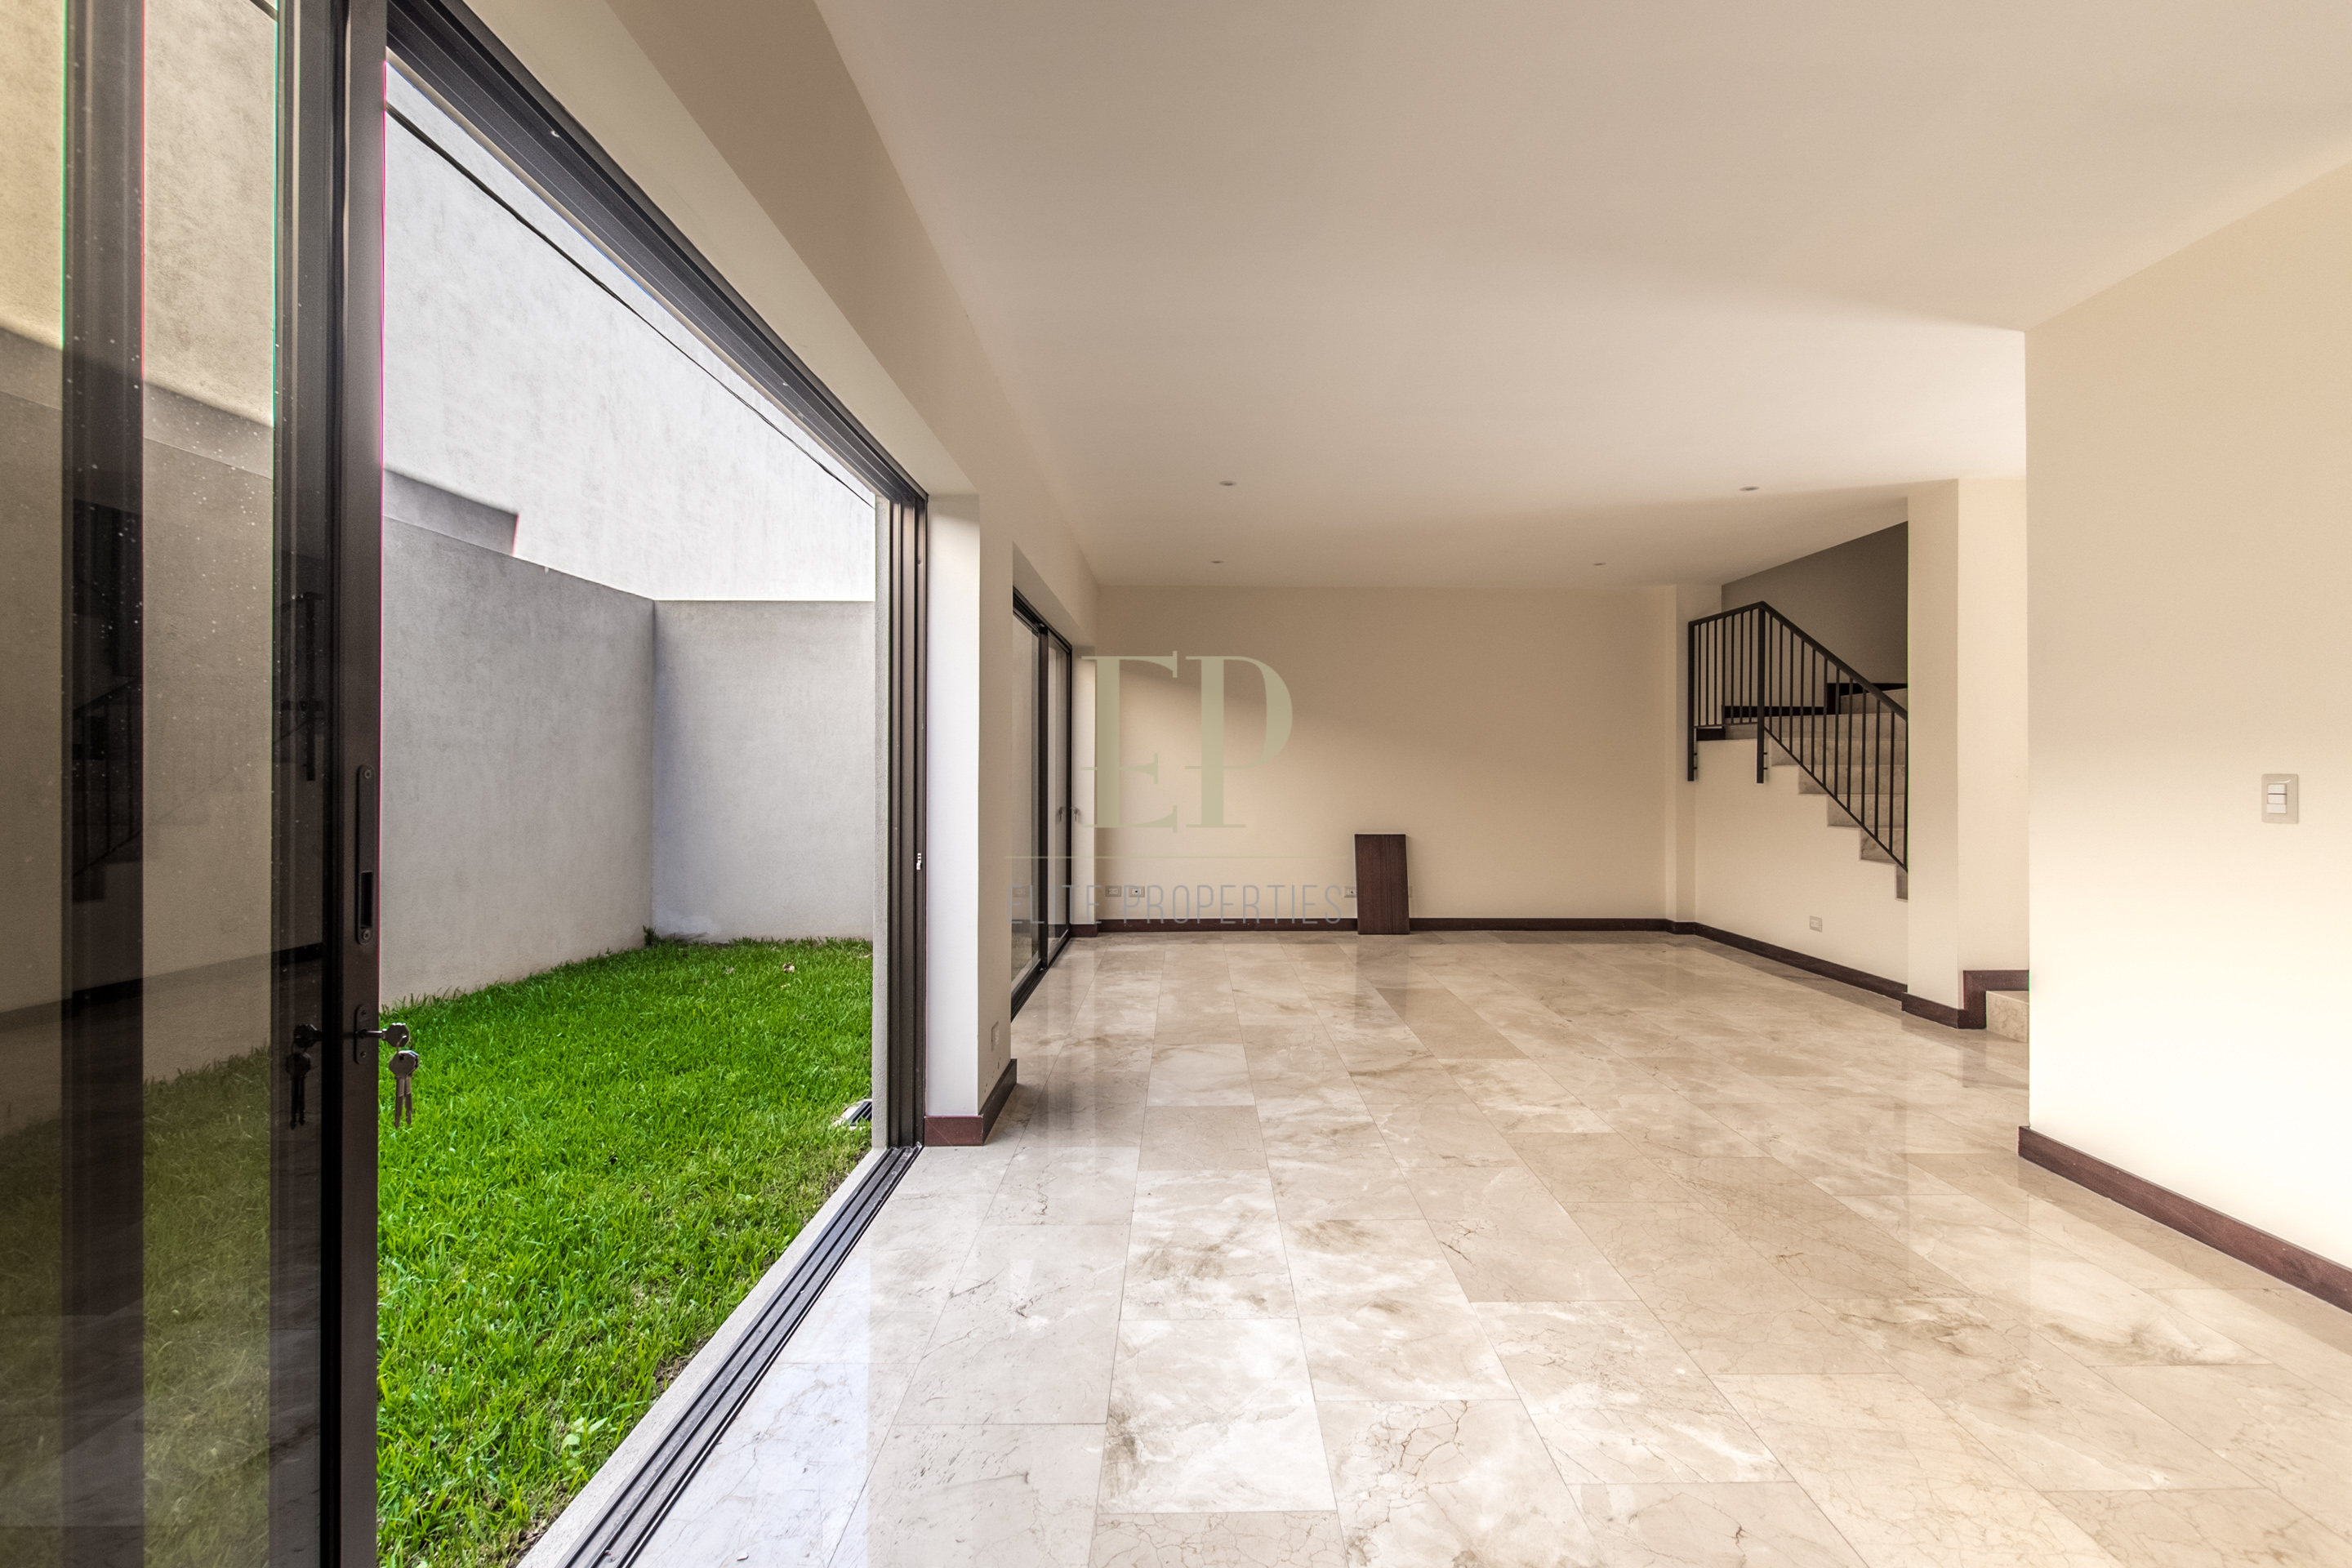 New two story houses in condominium located in Santa Ana Piedades